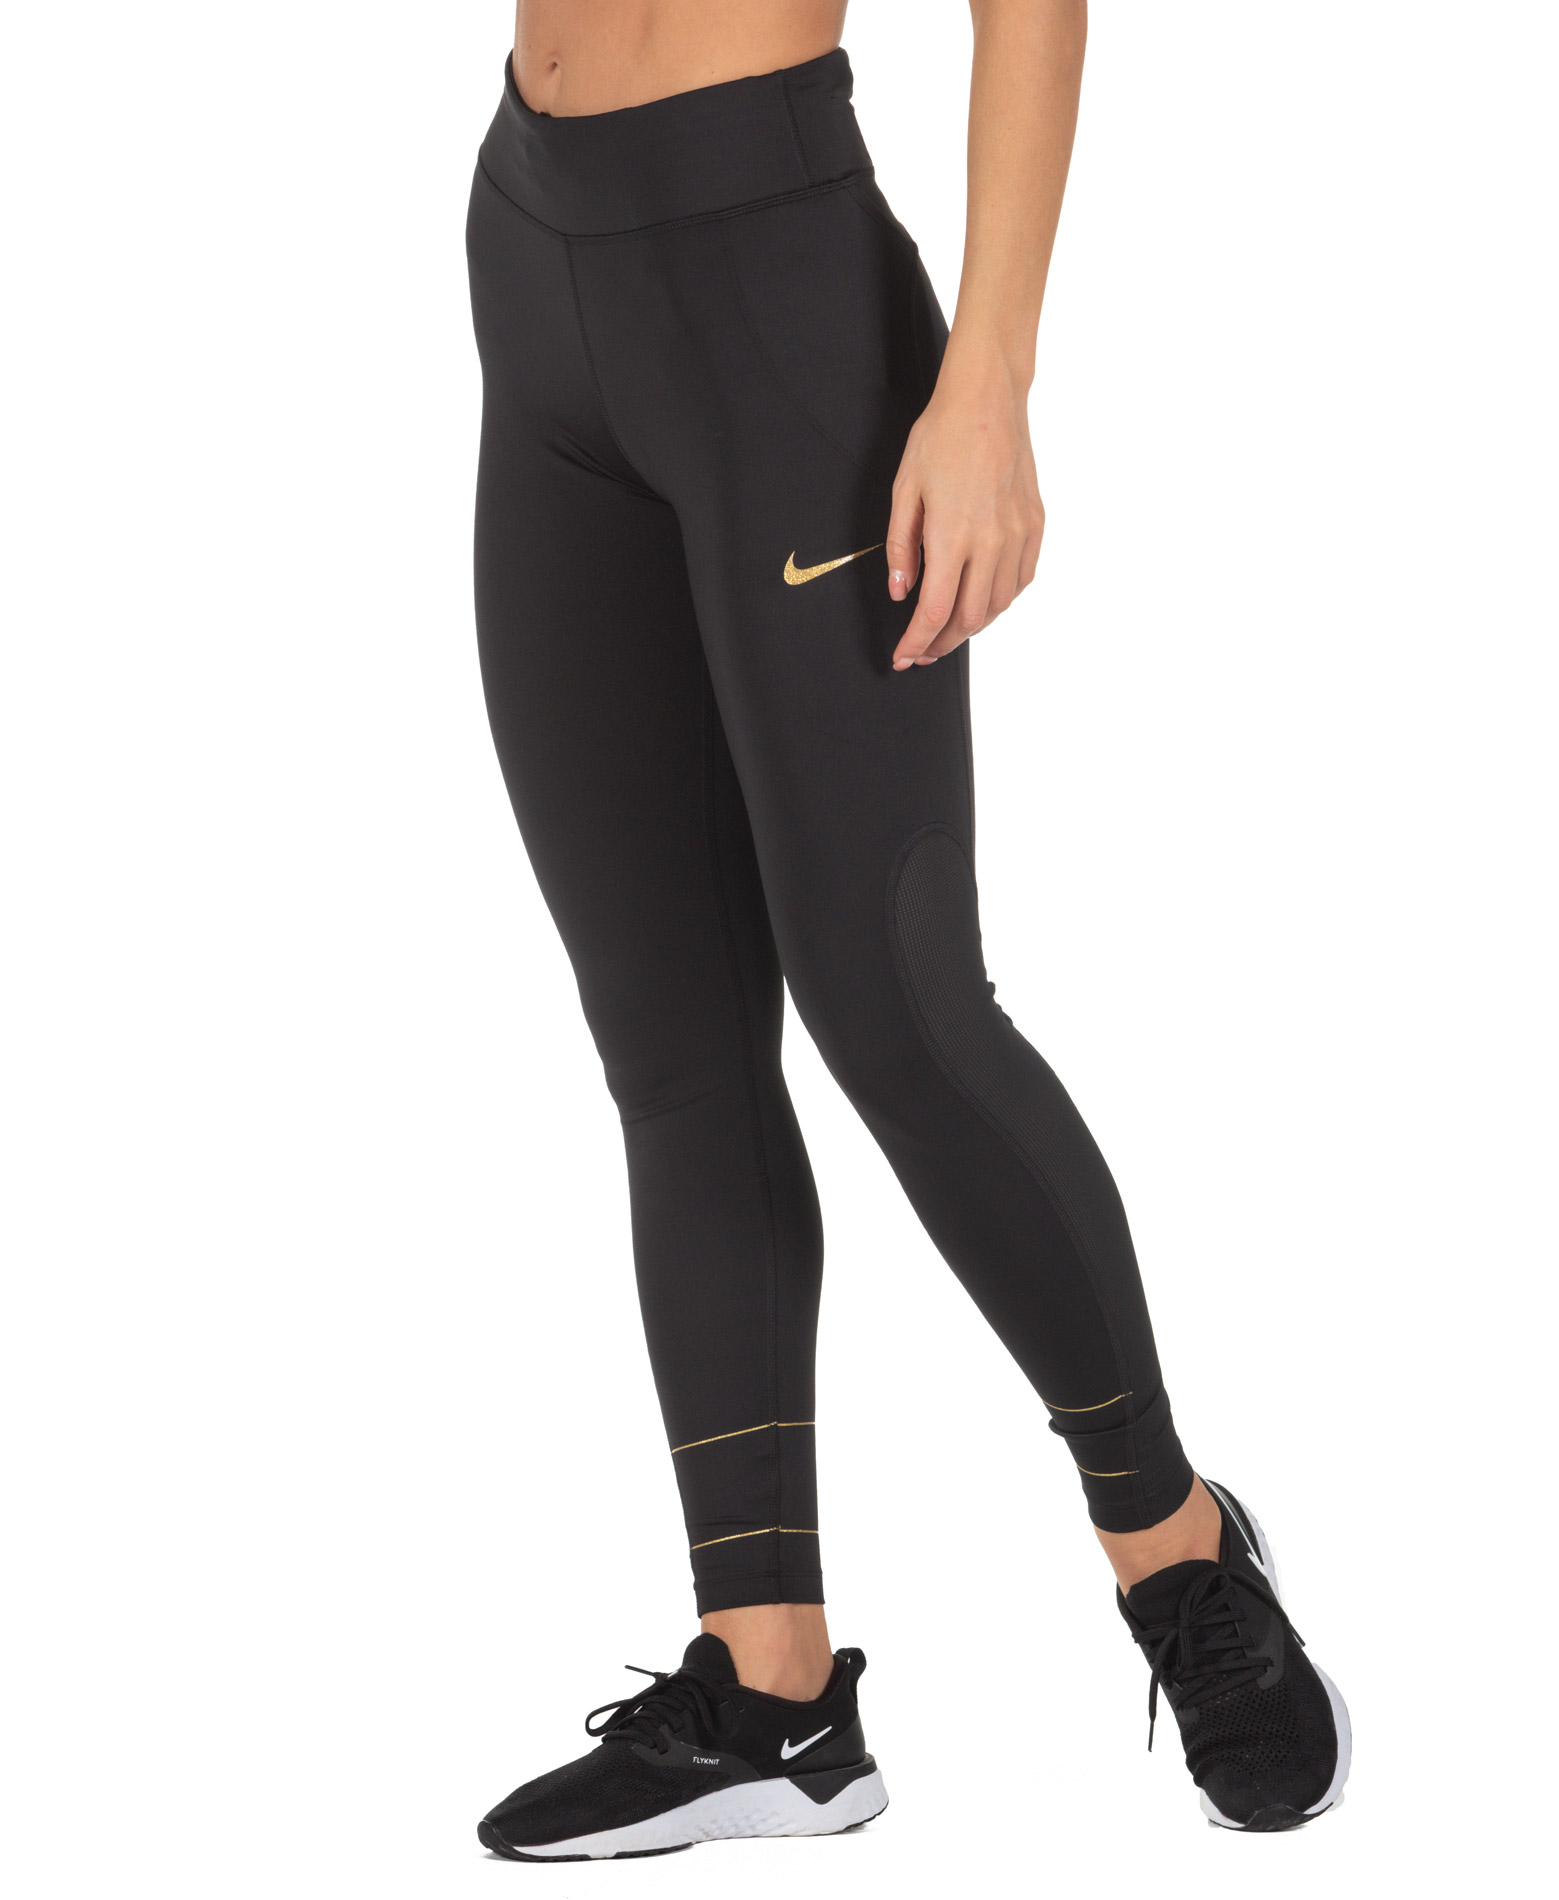 NIKE FAST WOMEN'S RUNNING TIGHTS CJ9710-010 Μαύρο